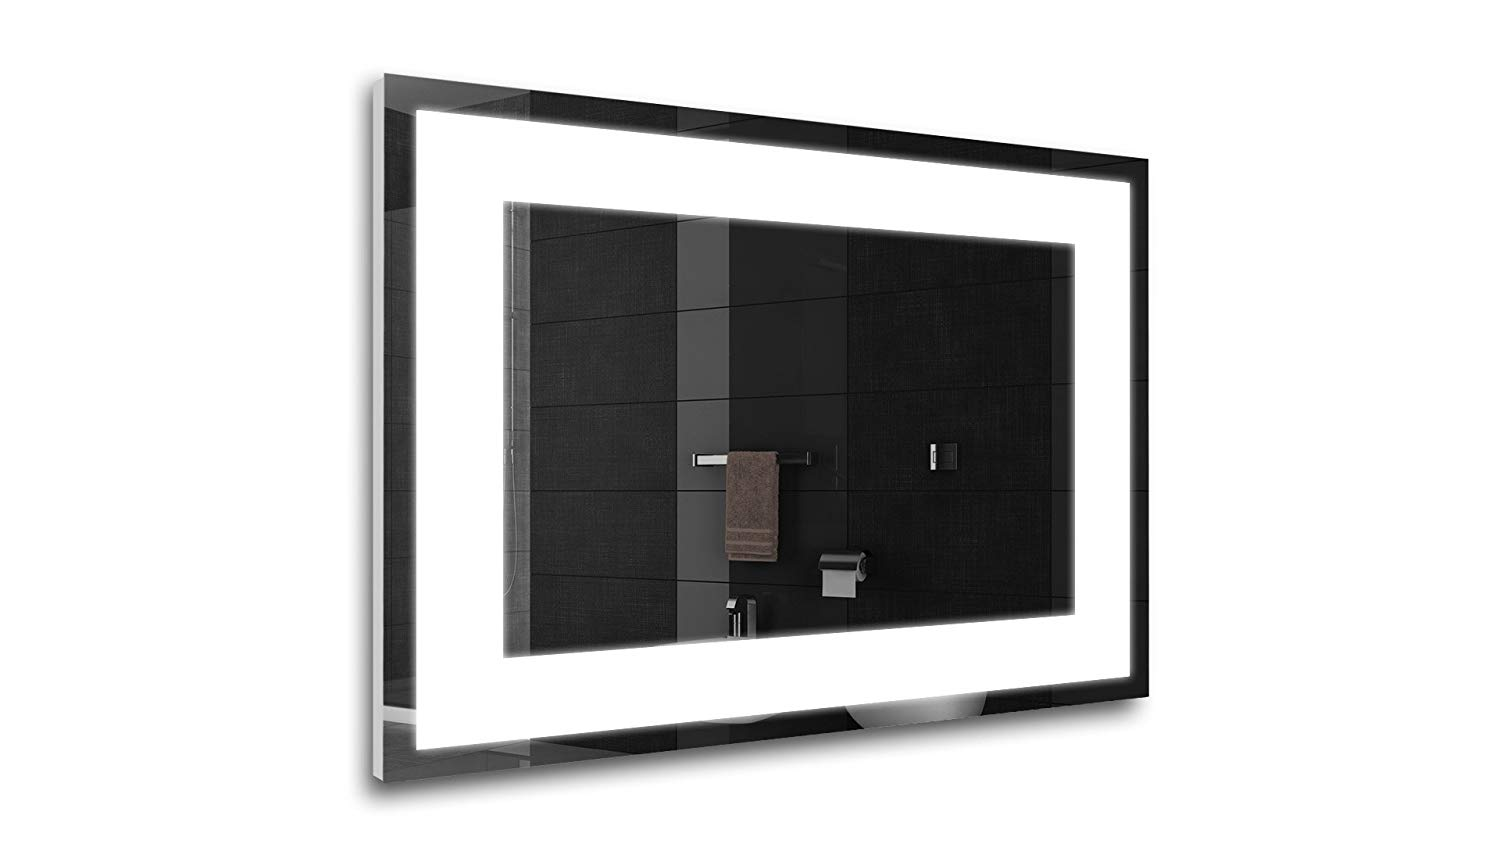 Tilebay LLC Salin Led Lighted Mirror | Bathroom Mirror | Led Make-up Mirror | 3 Switch Types Available (31x23, Remote Control)